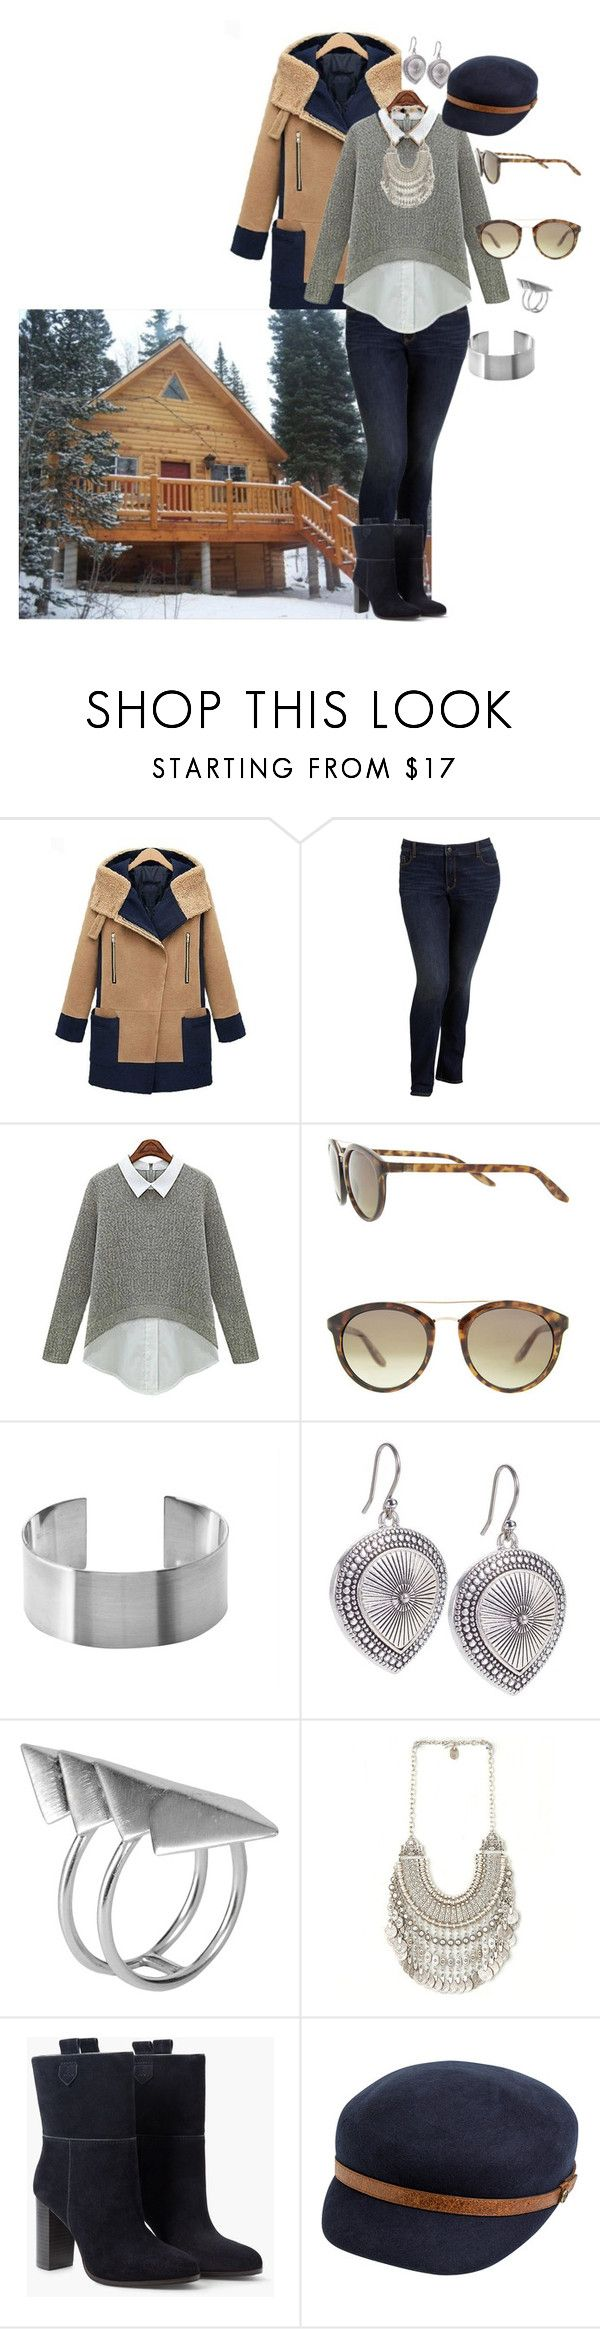 """""""Country Ride"""" by thomdl95 on Polyvore featuring Old Navy, Lane Bryant, Lucky Brand, First People First, MANGO, Fallenbrokenstreet, country, women's clothing, women's fashion and women"""